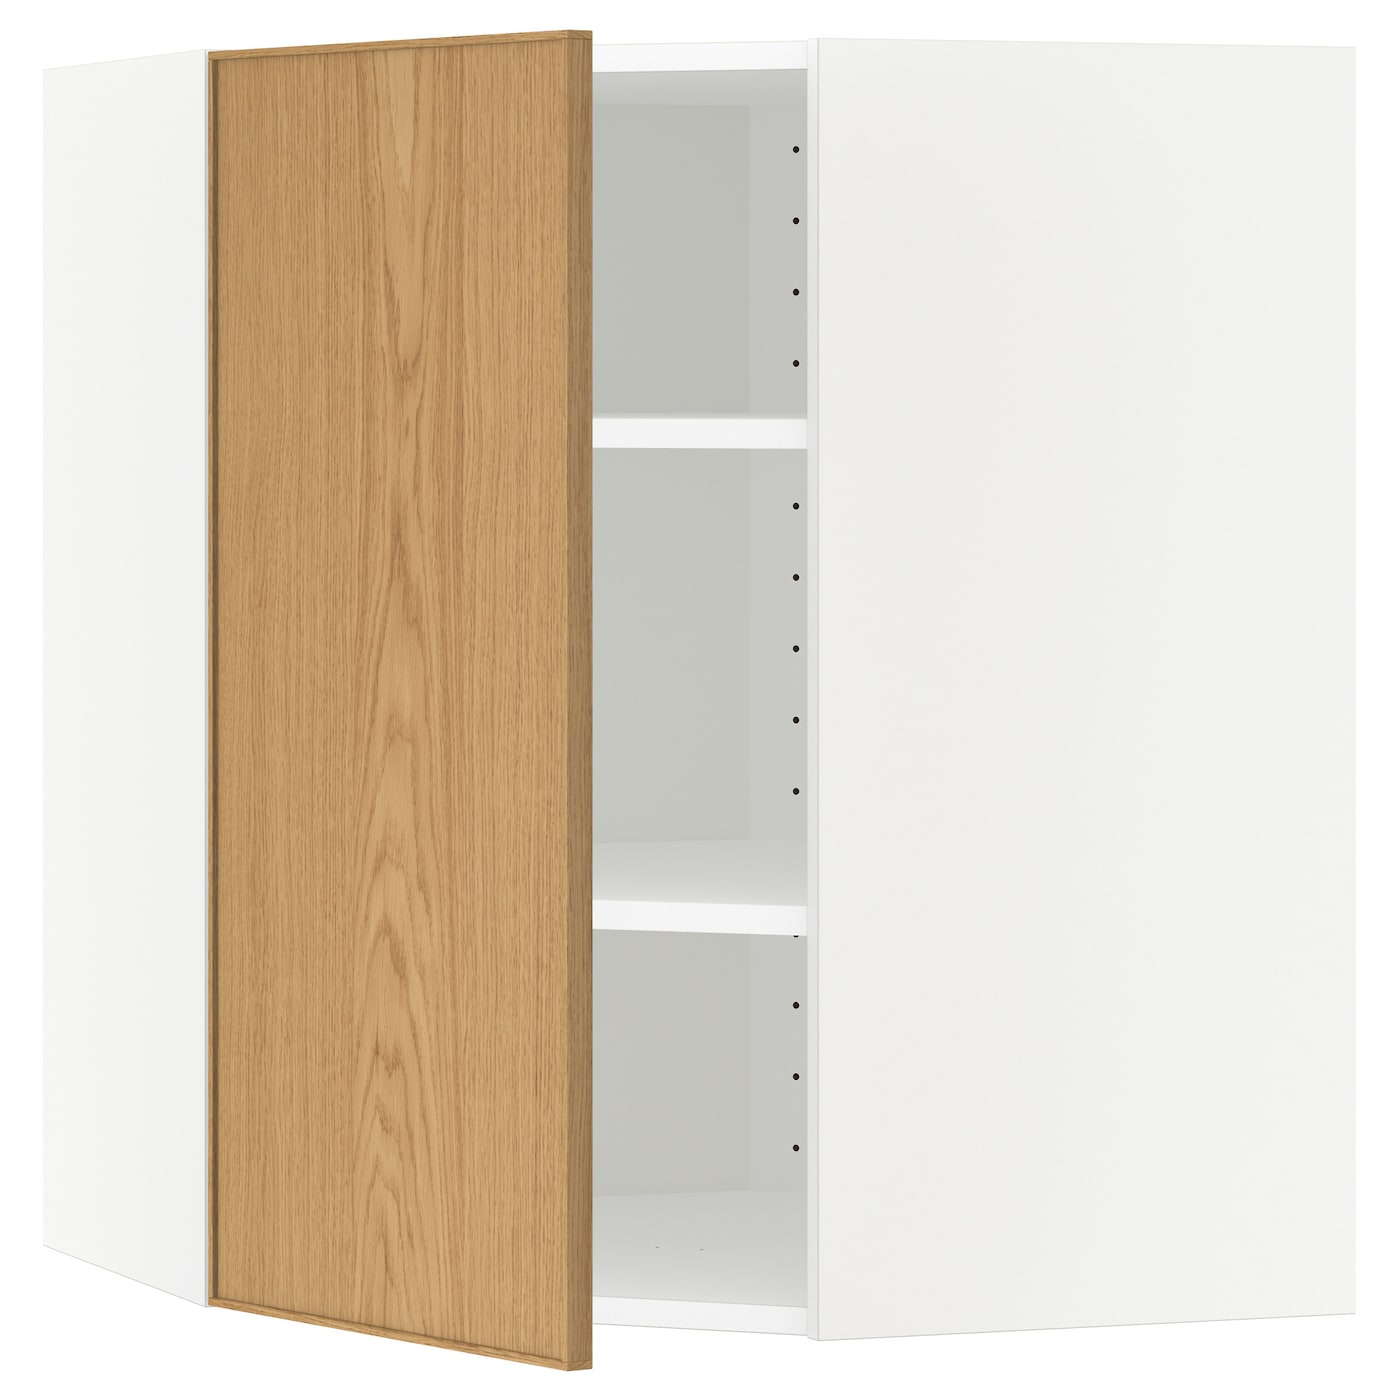 Ikea Metod Corner Wall Cabinet With Shelves Sy Frame Construction 18 Mm Thick